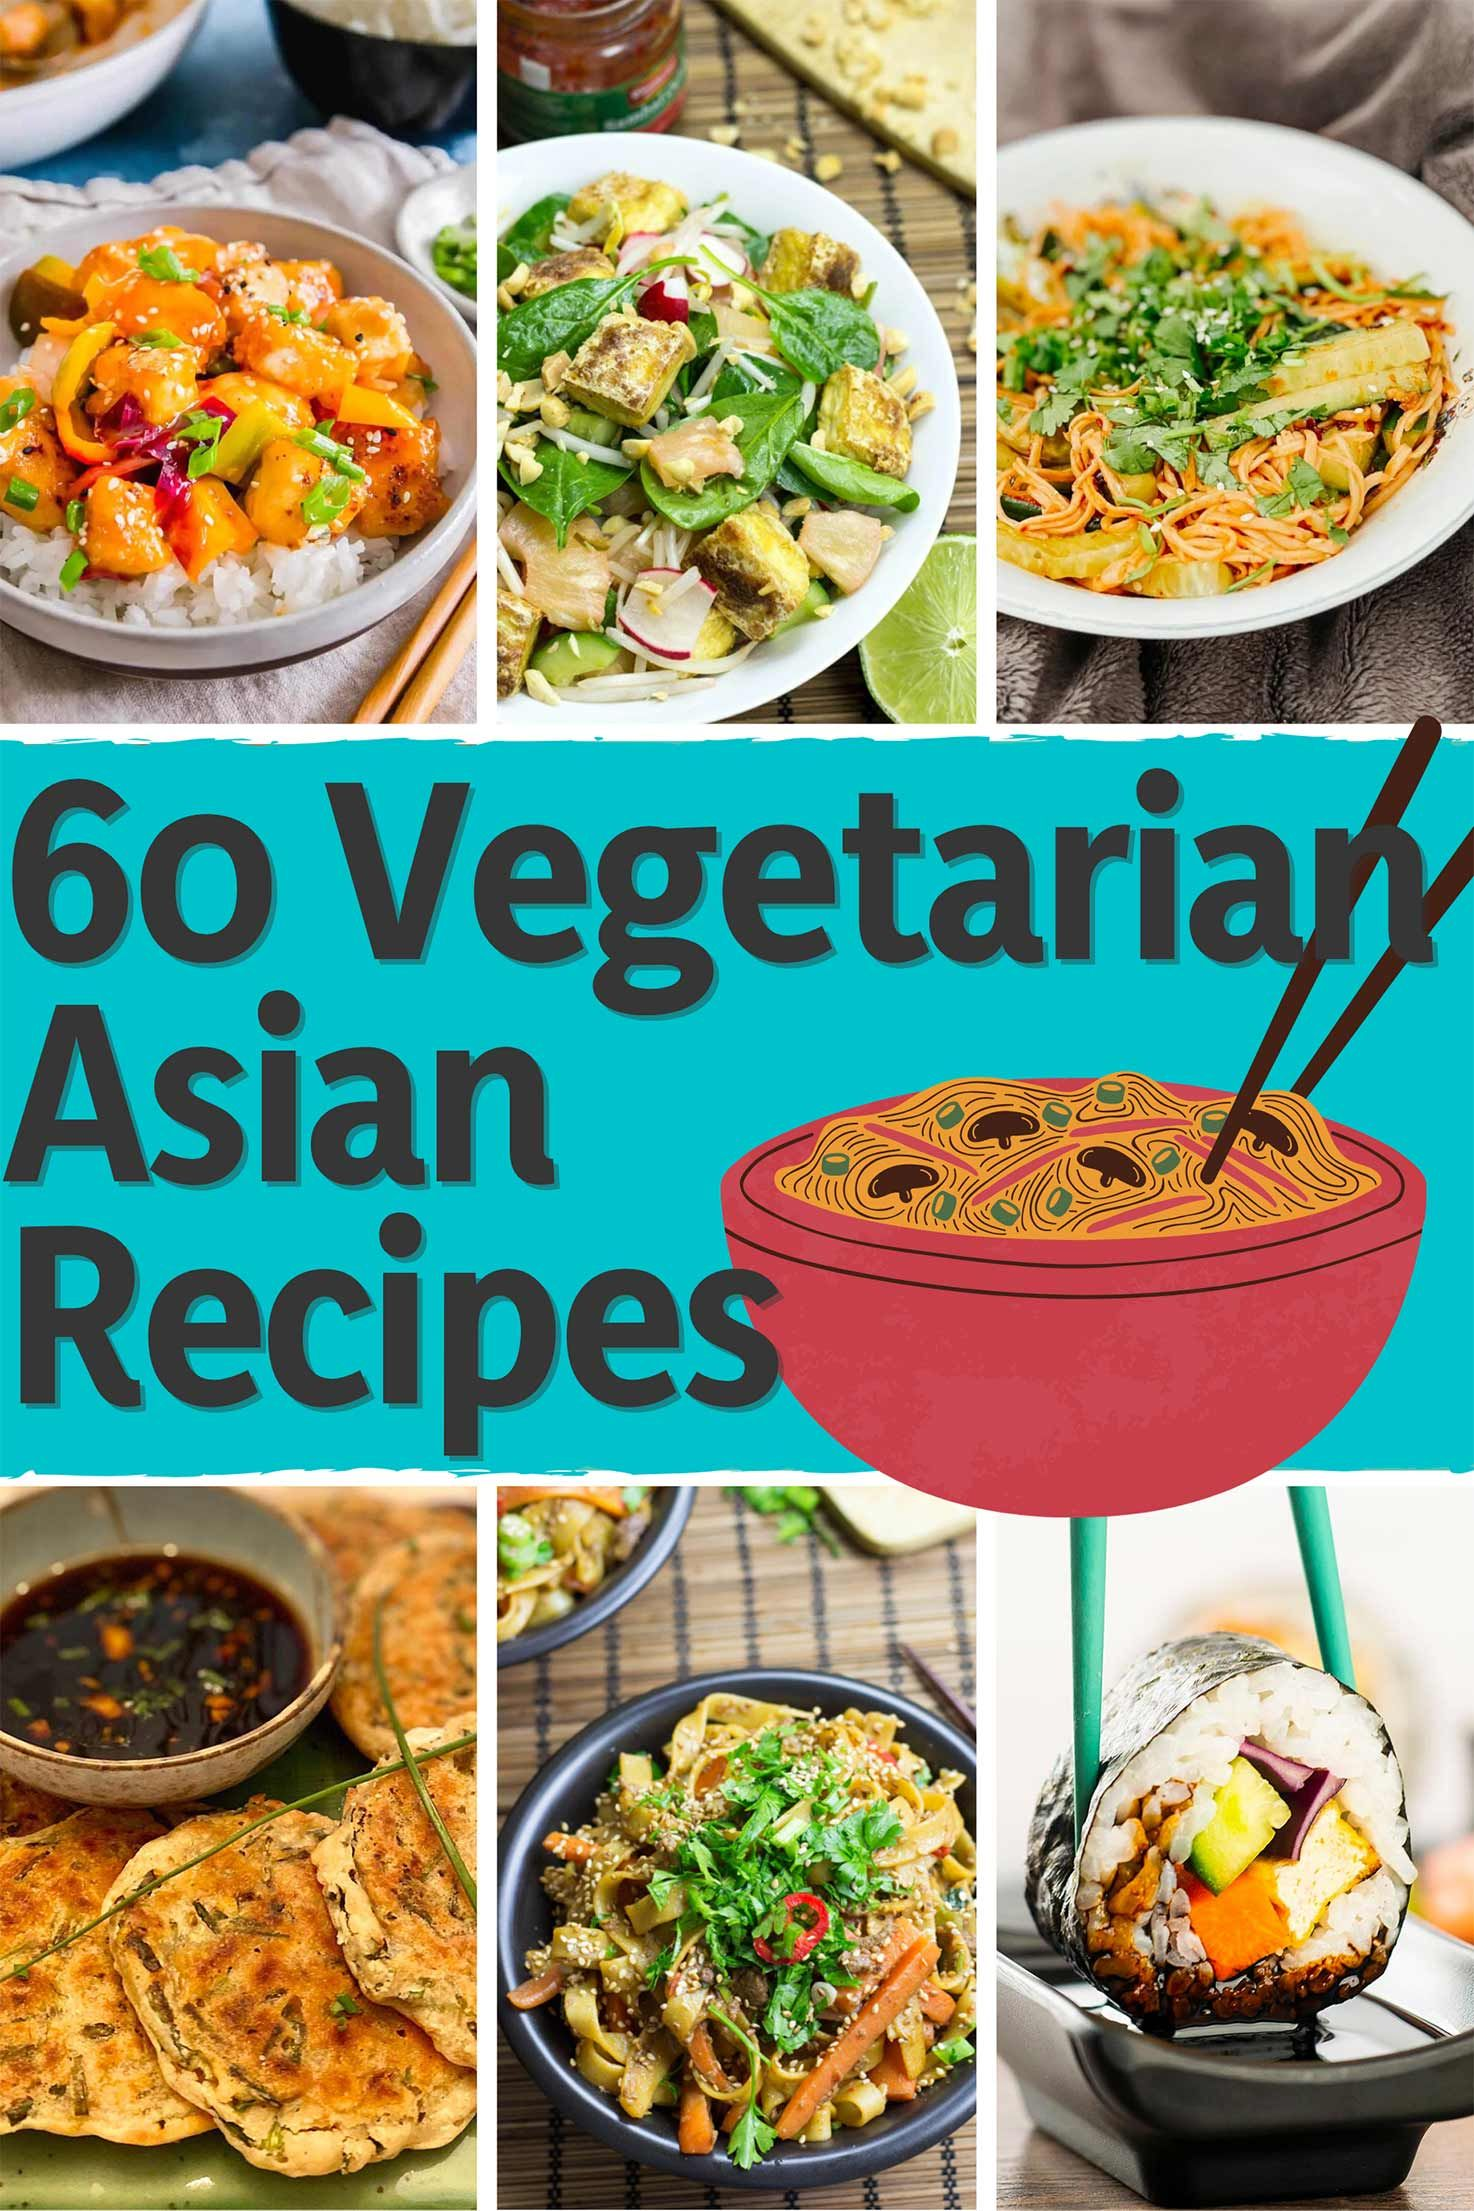 60 Vegetarian Asian Recipes Travel With Your Tastebuds Recipe In 2021 Asian Vegetarian Recipes Vegetarian Asian Asian Recipes